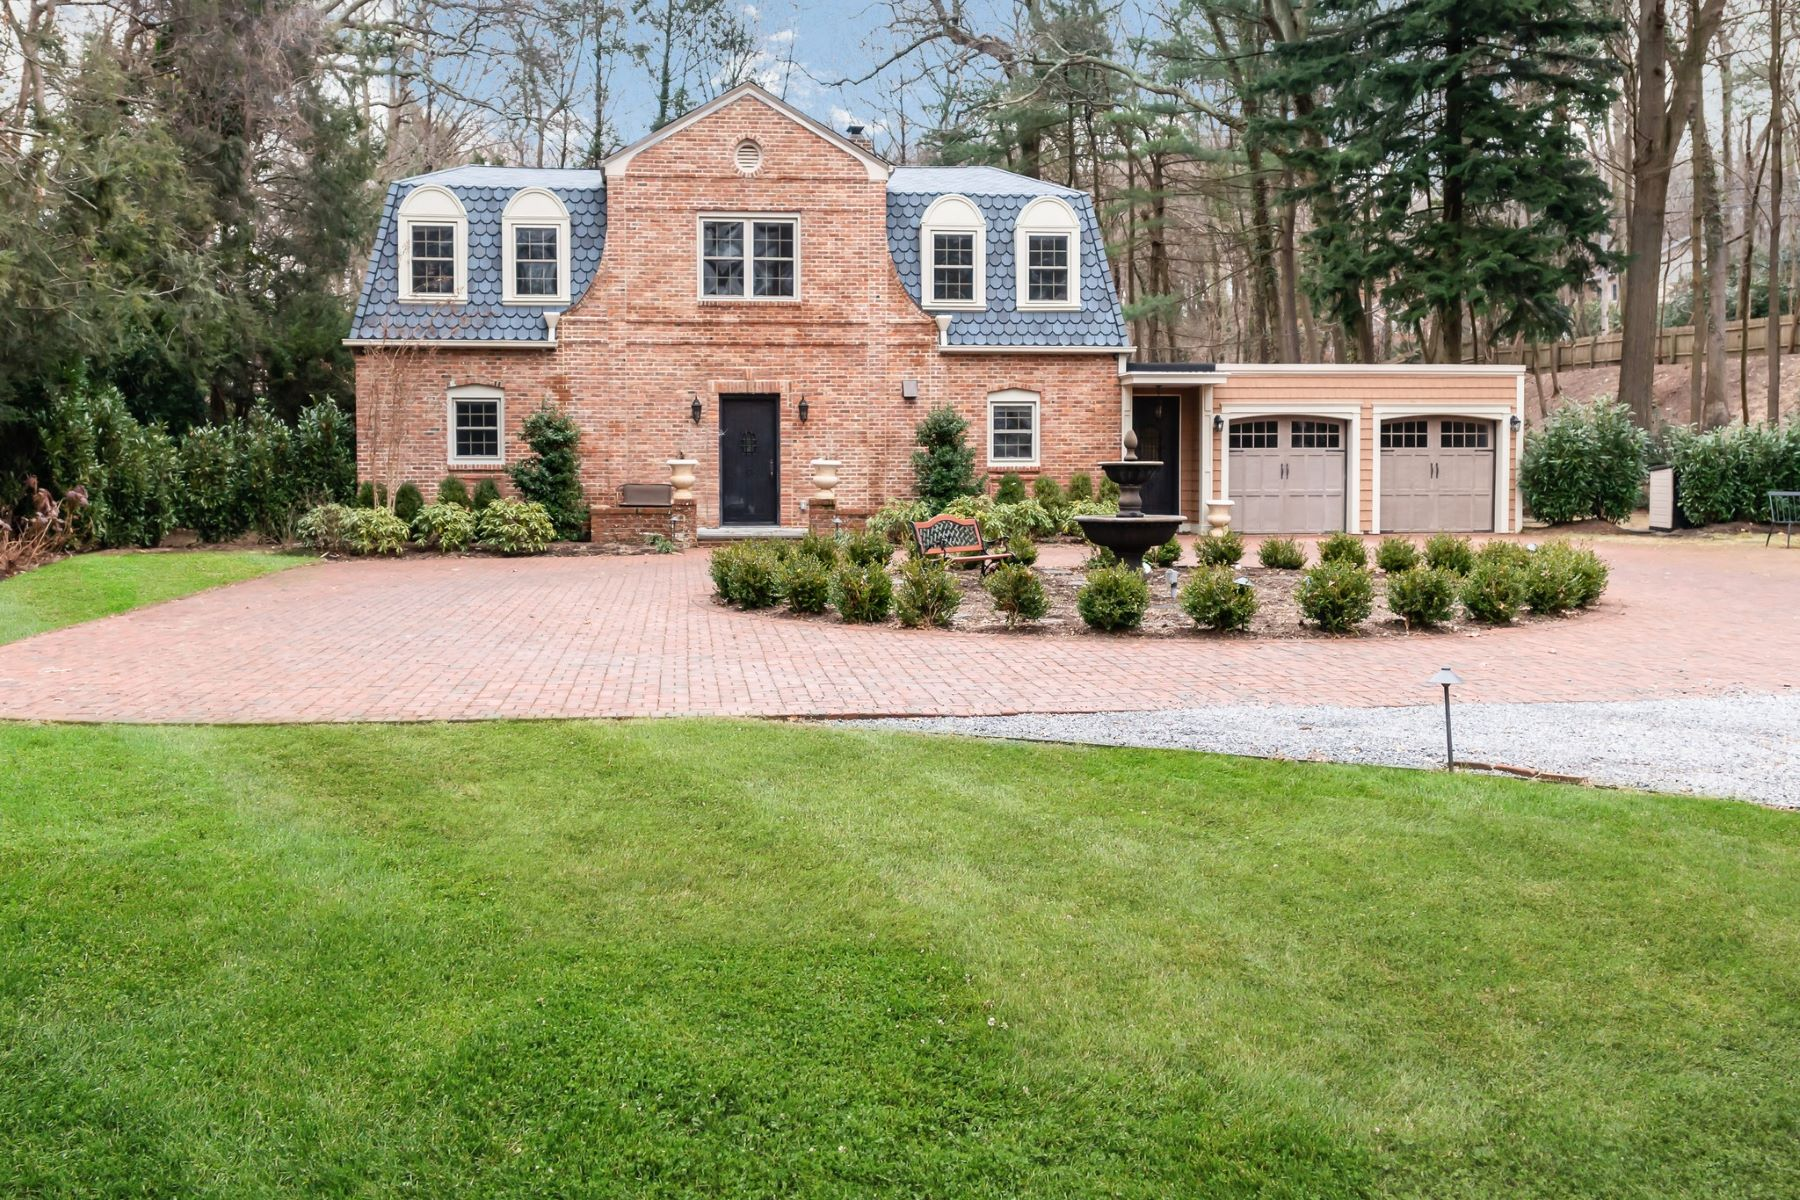 Single Family Homes for Active at Syosset 11 Pine Rd Syosset, New York 11791 United States